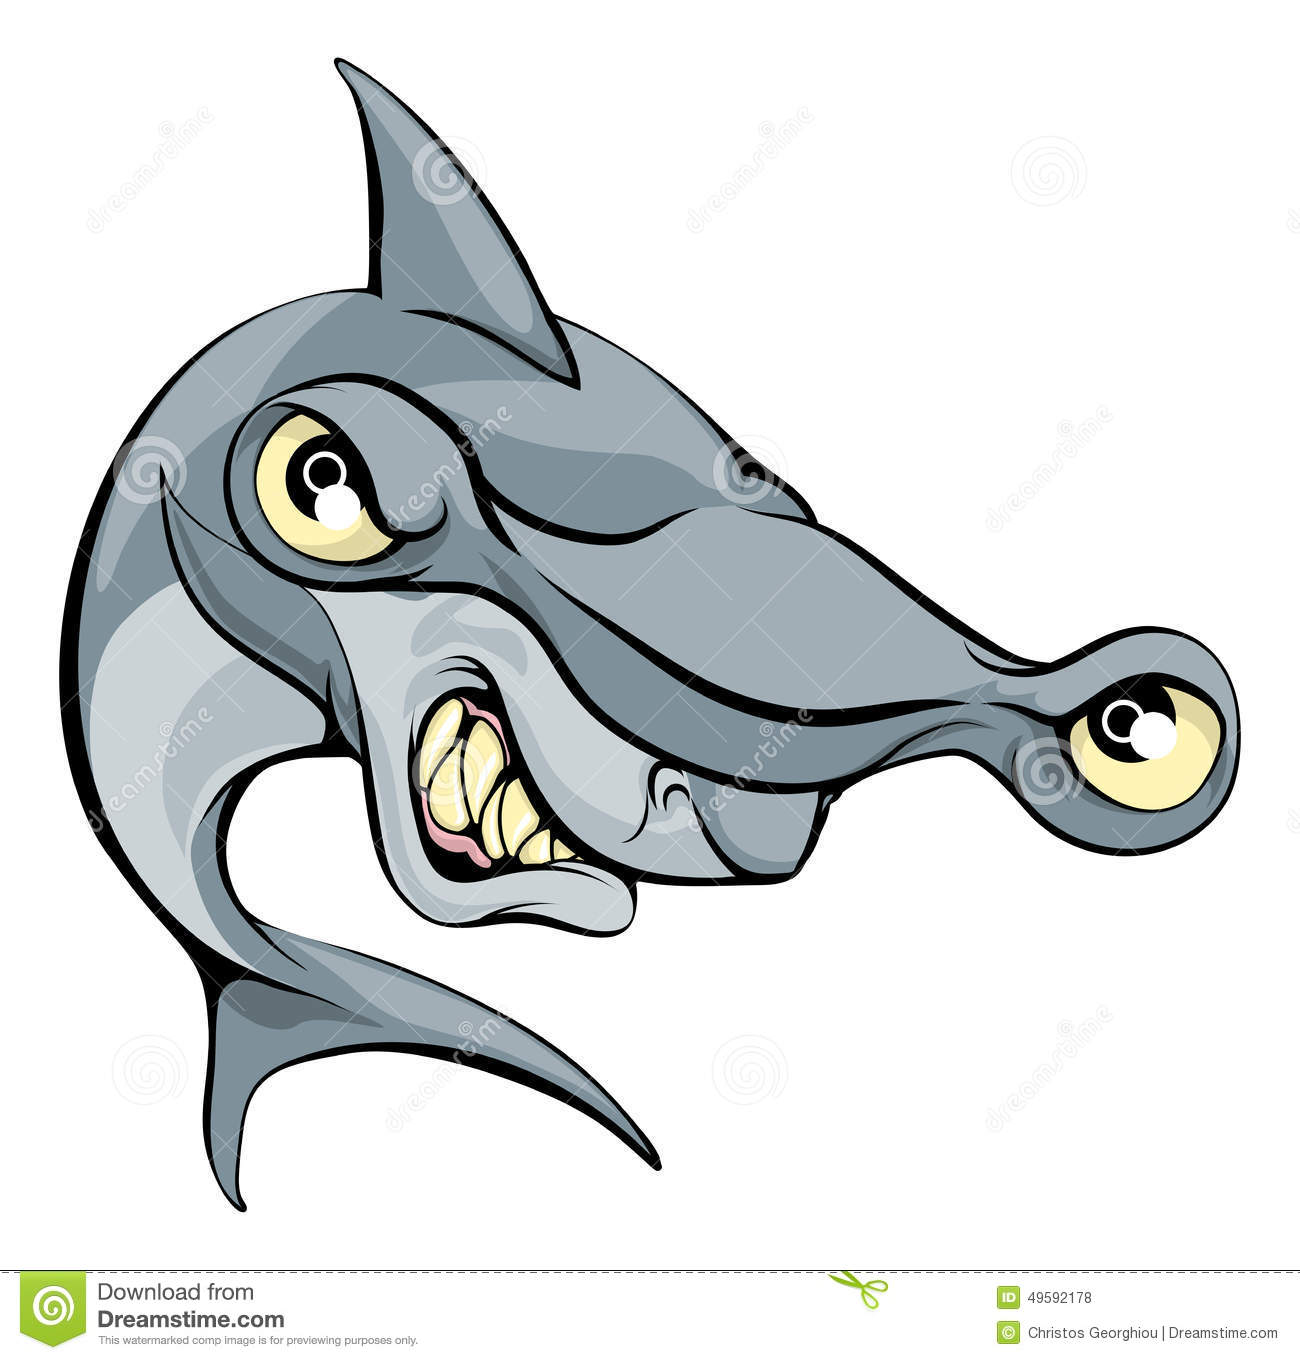 Hammer Head Shark Cartoon Stock Vector - Image: 49592178